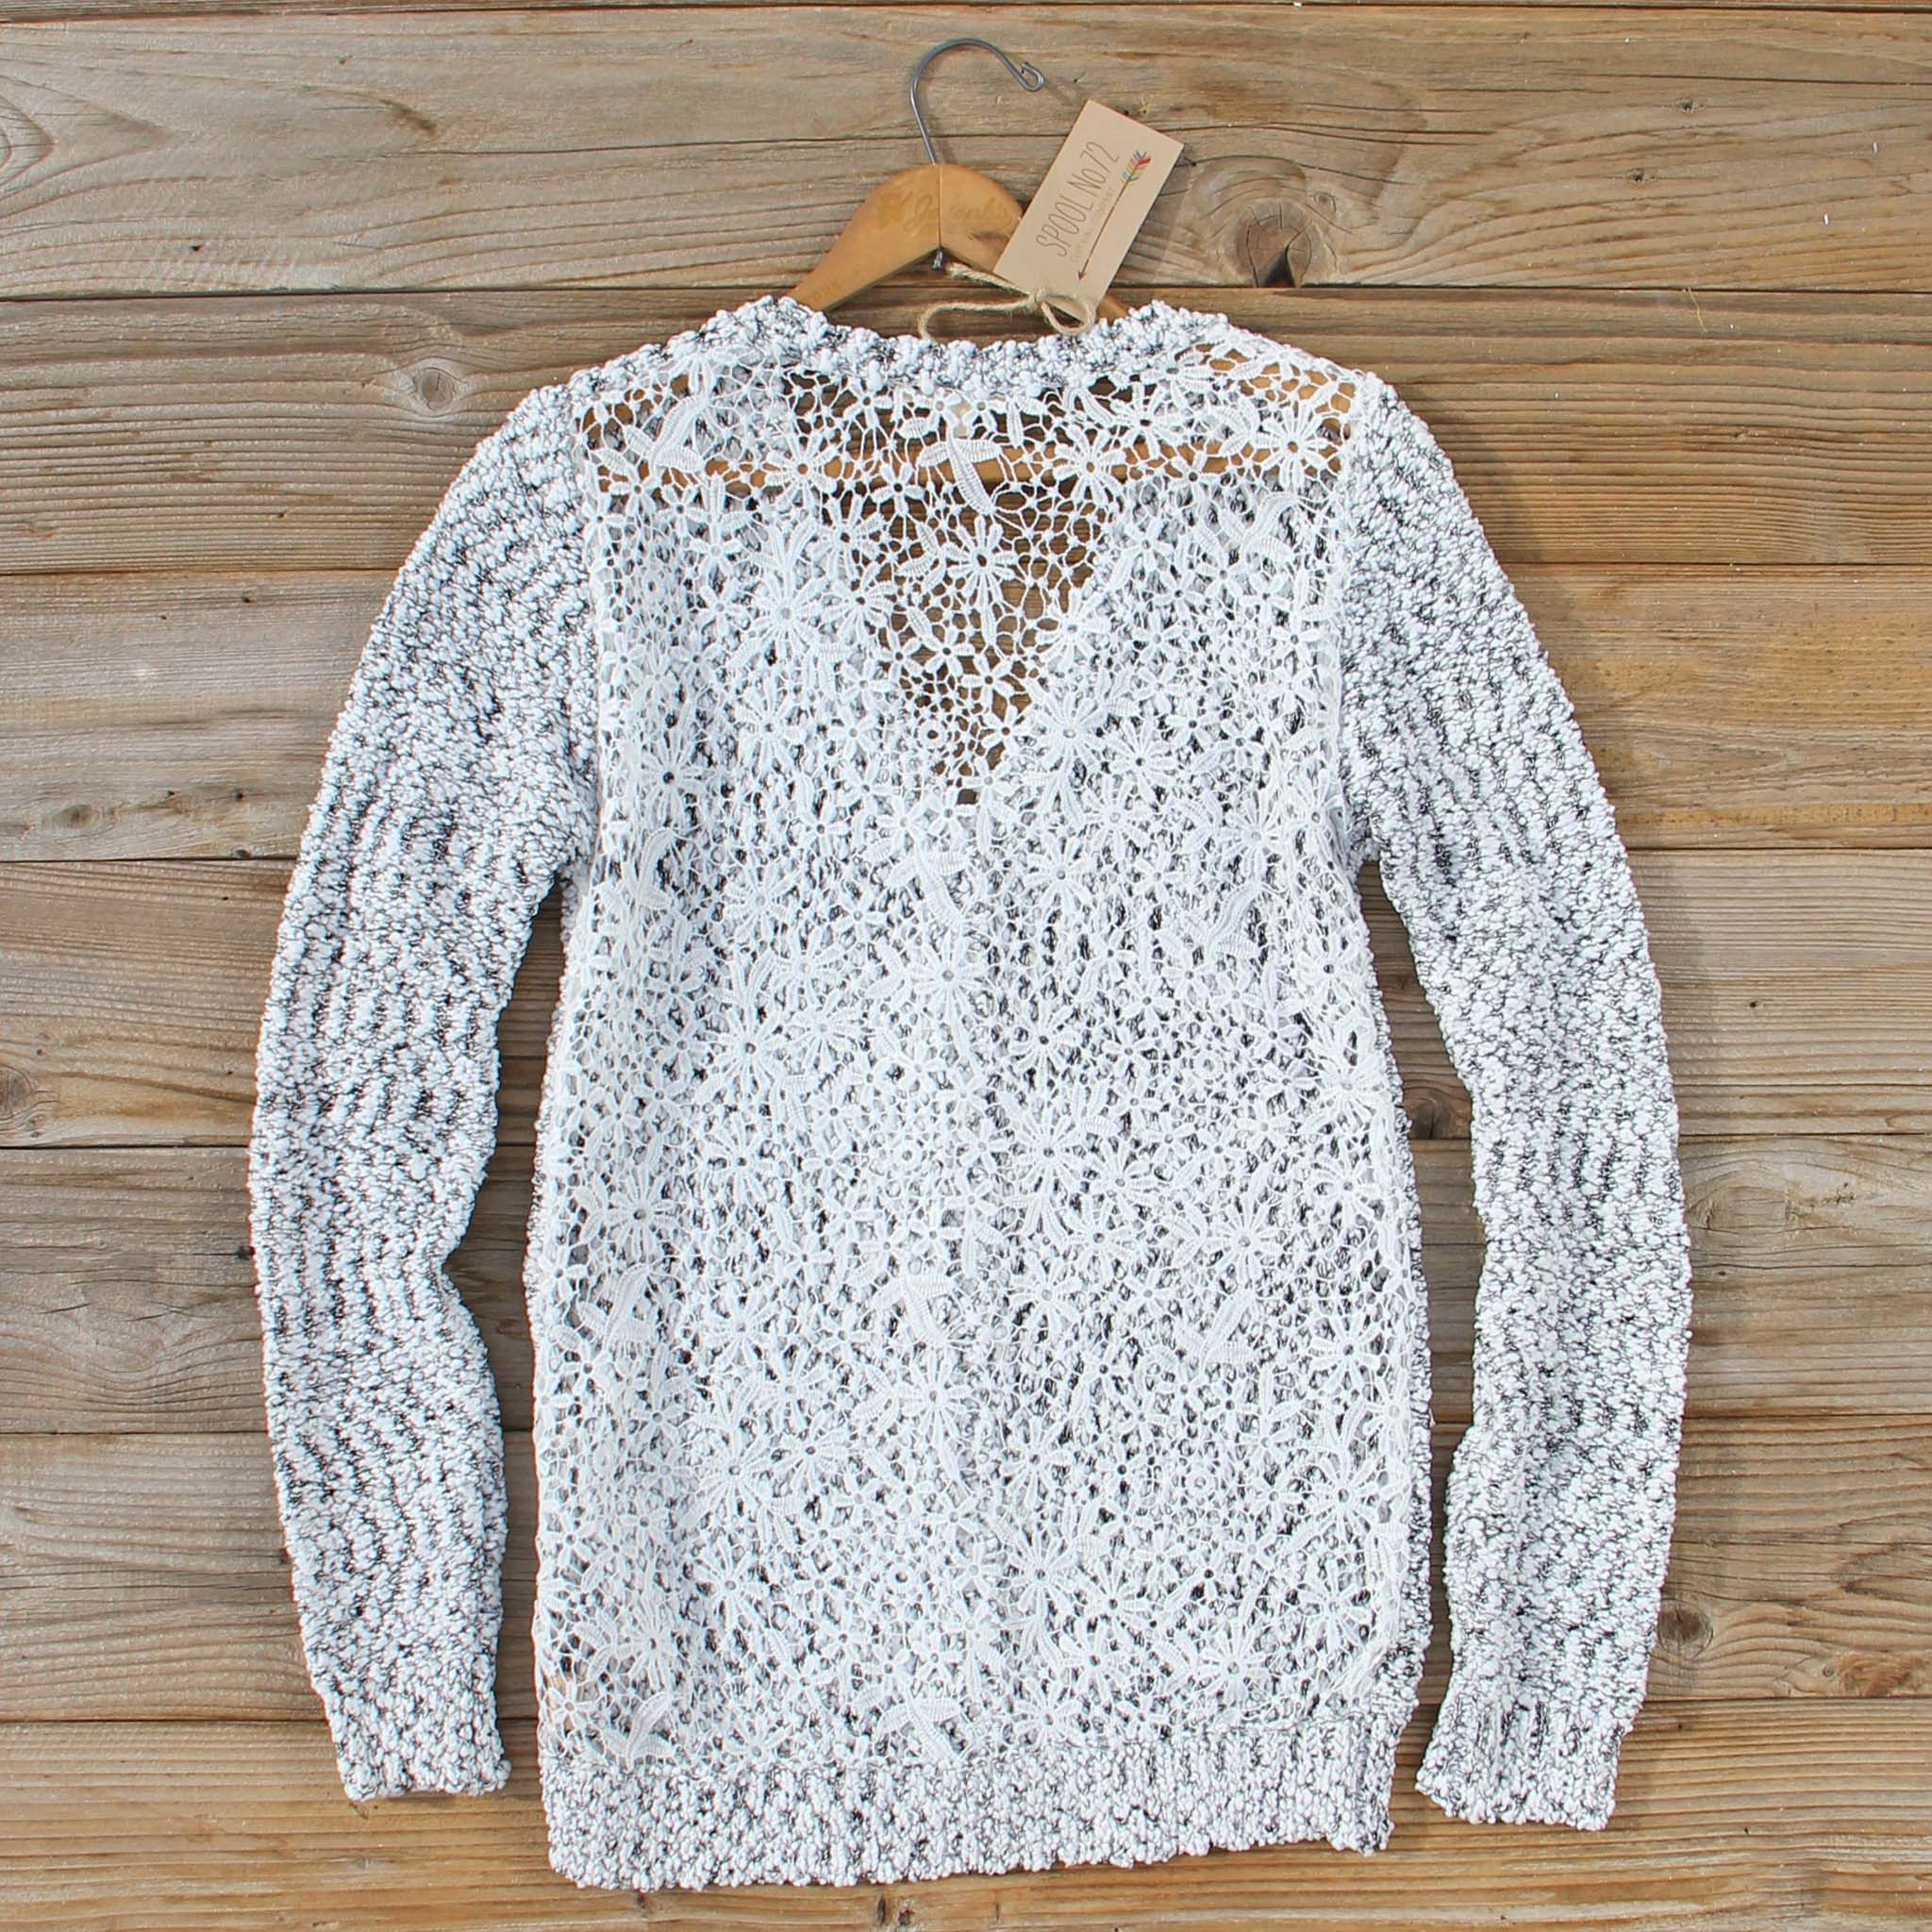 The Lace Leaf Sweater... Pair with a tee & jeans and you are set for a cozy casual outfit.